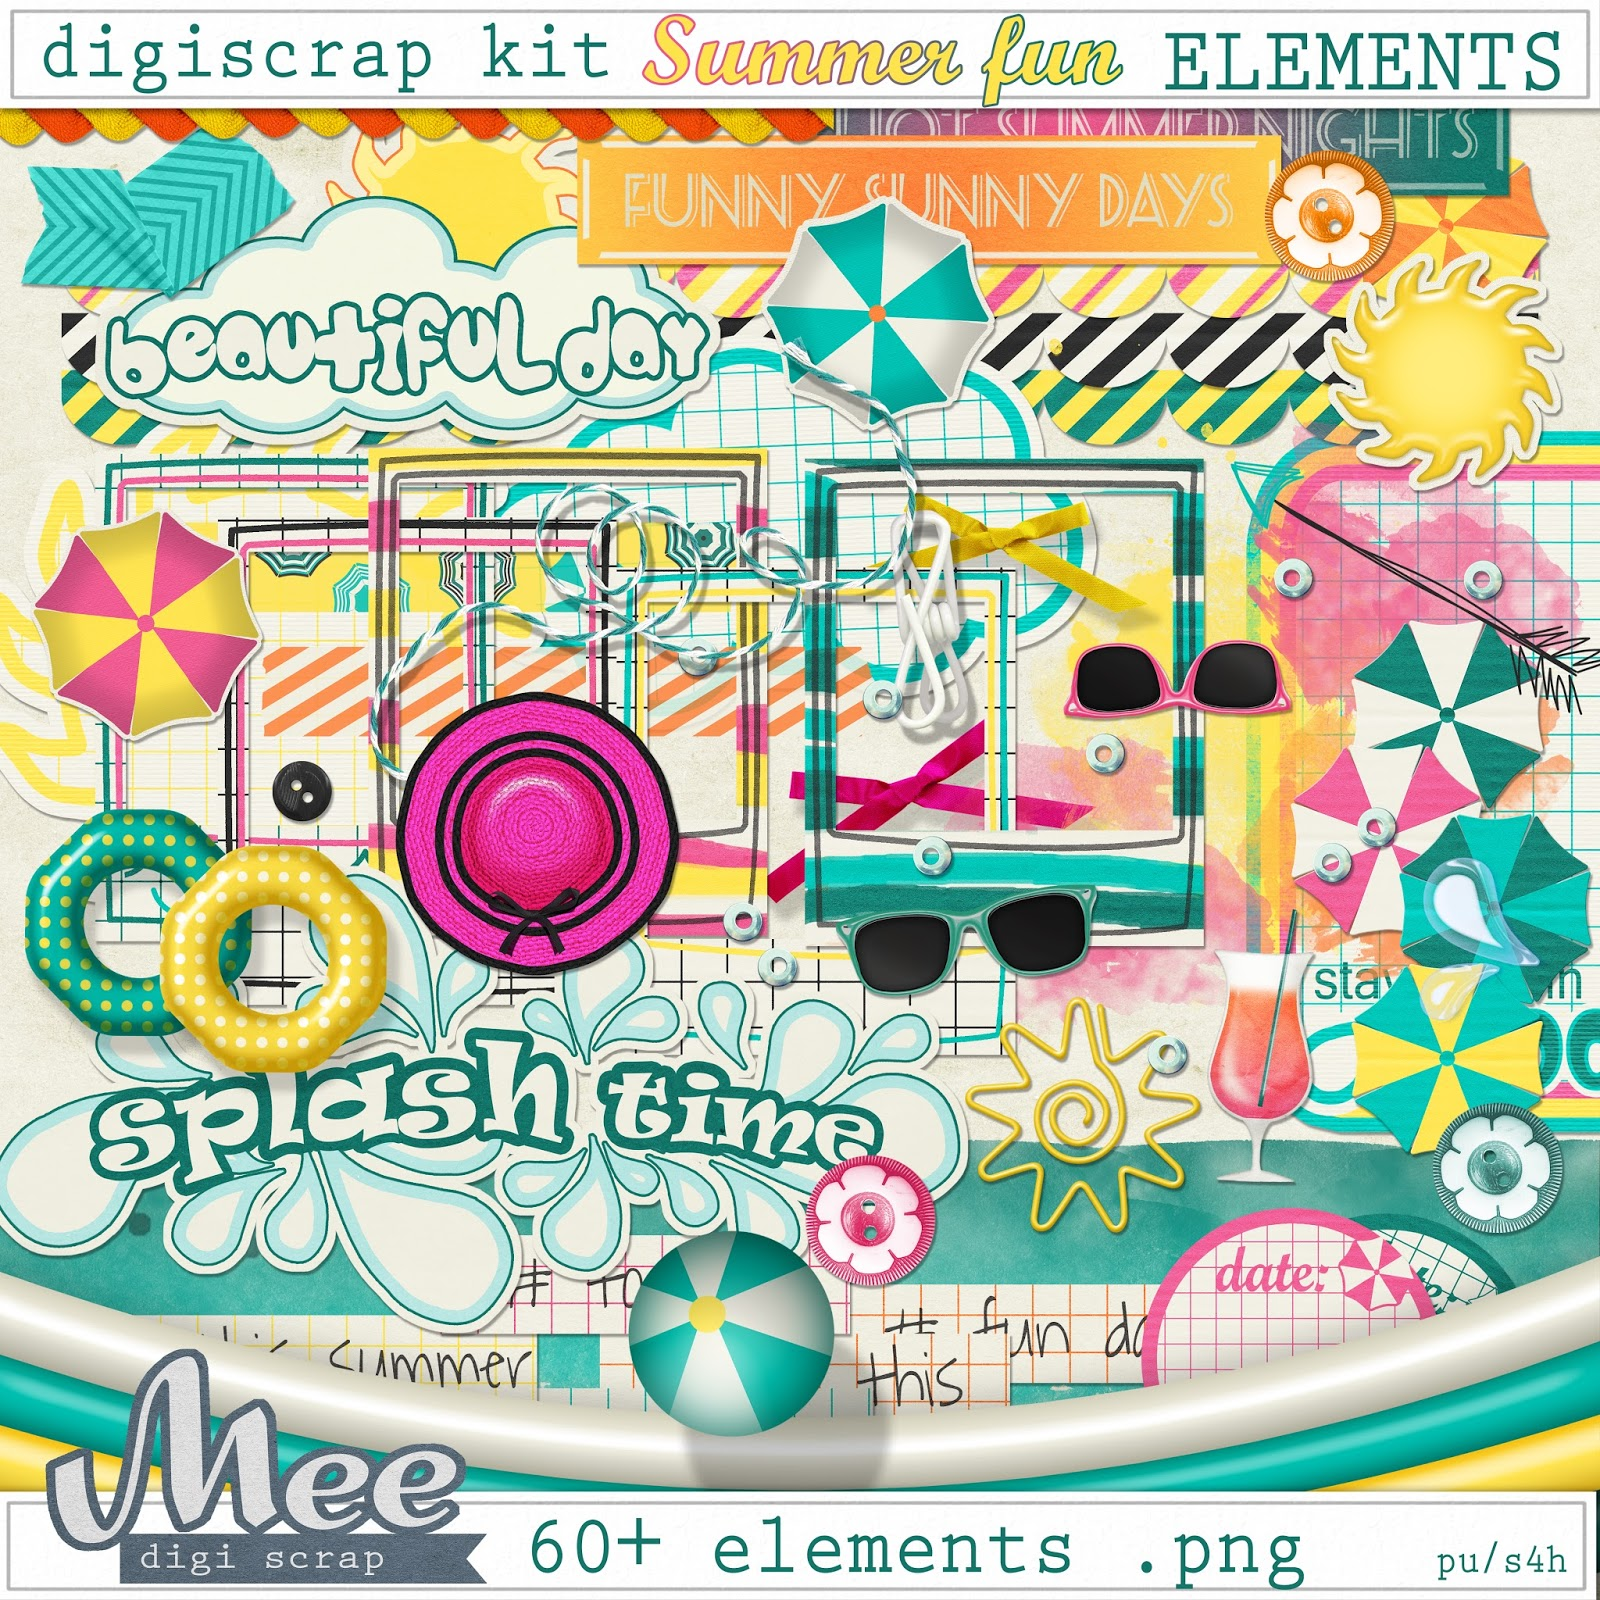 Mee Scrapbook Kits Free Download Digital Scrapbook Kit Summer Fun